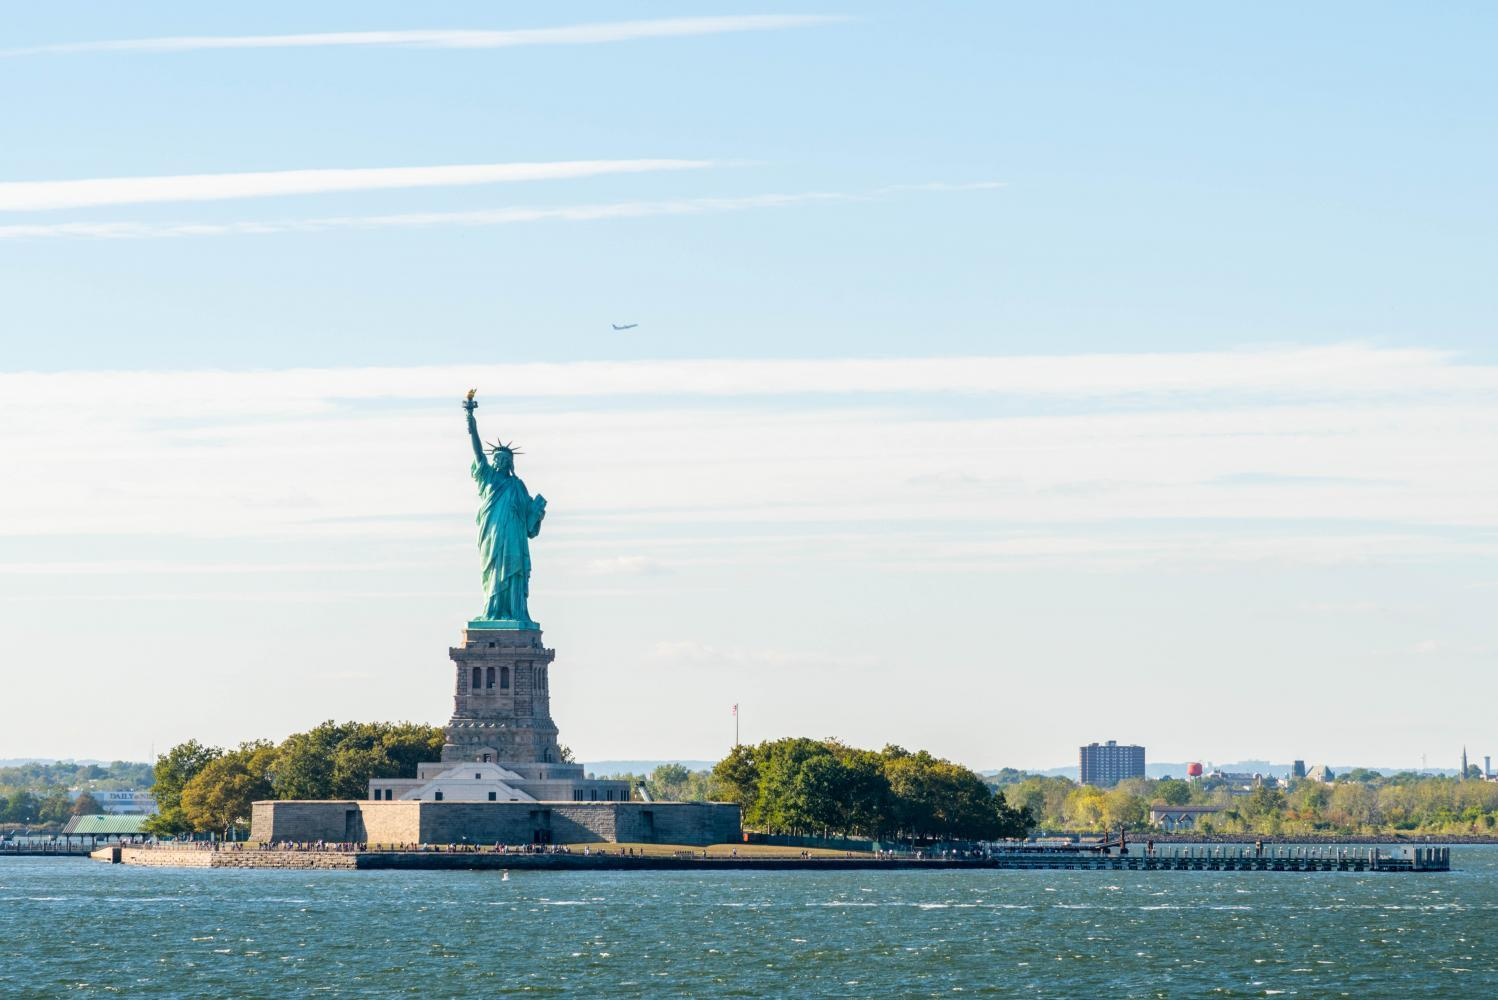 Just a ferry ride away, Staten Island is the perfect place for students to get away from the bustling city. Some attractions include seeing the Statue of Liberty, Freshkills Park and Sailor's Snug Harbor & Botanical Gardens.